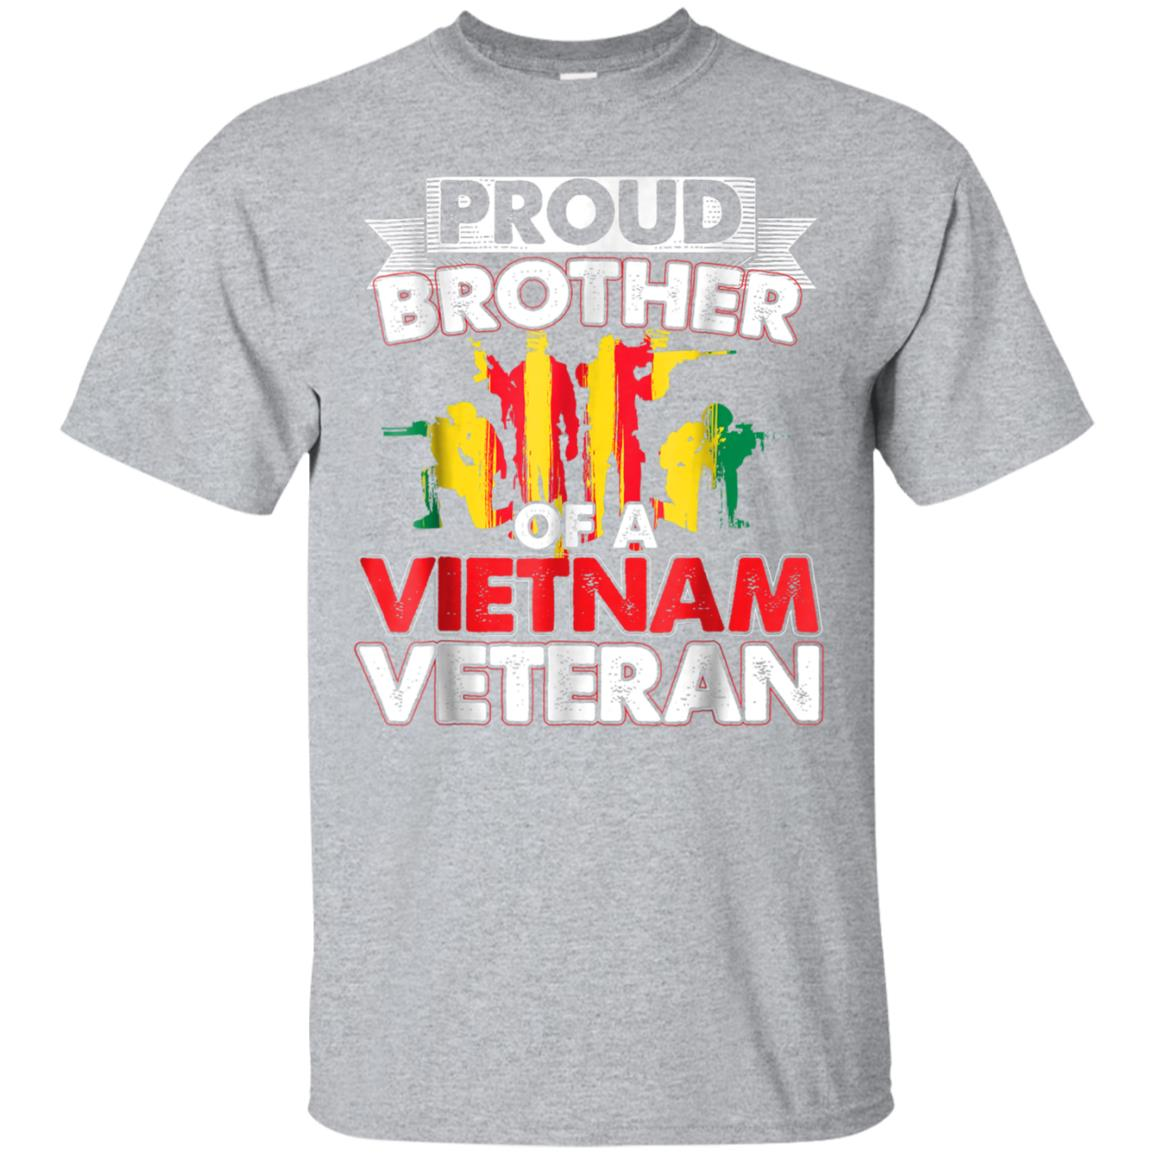 Proud Brother Vietnam Veteran Tshirt Veteran's Day Gift 99promocode